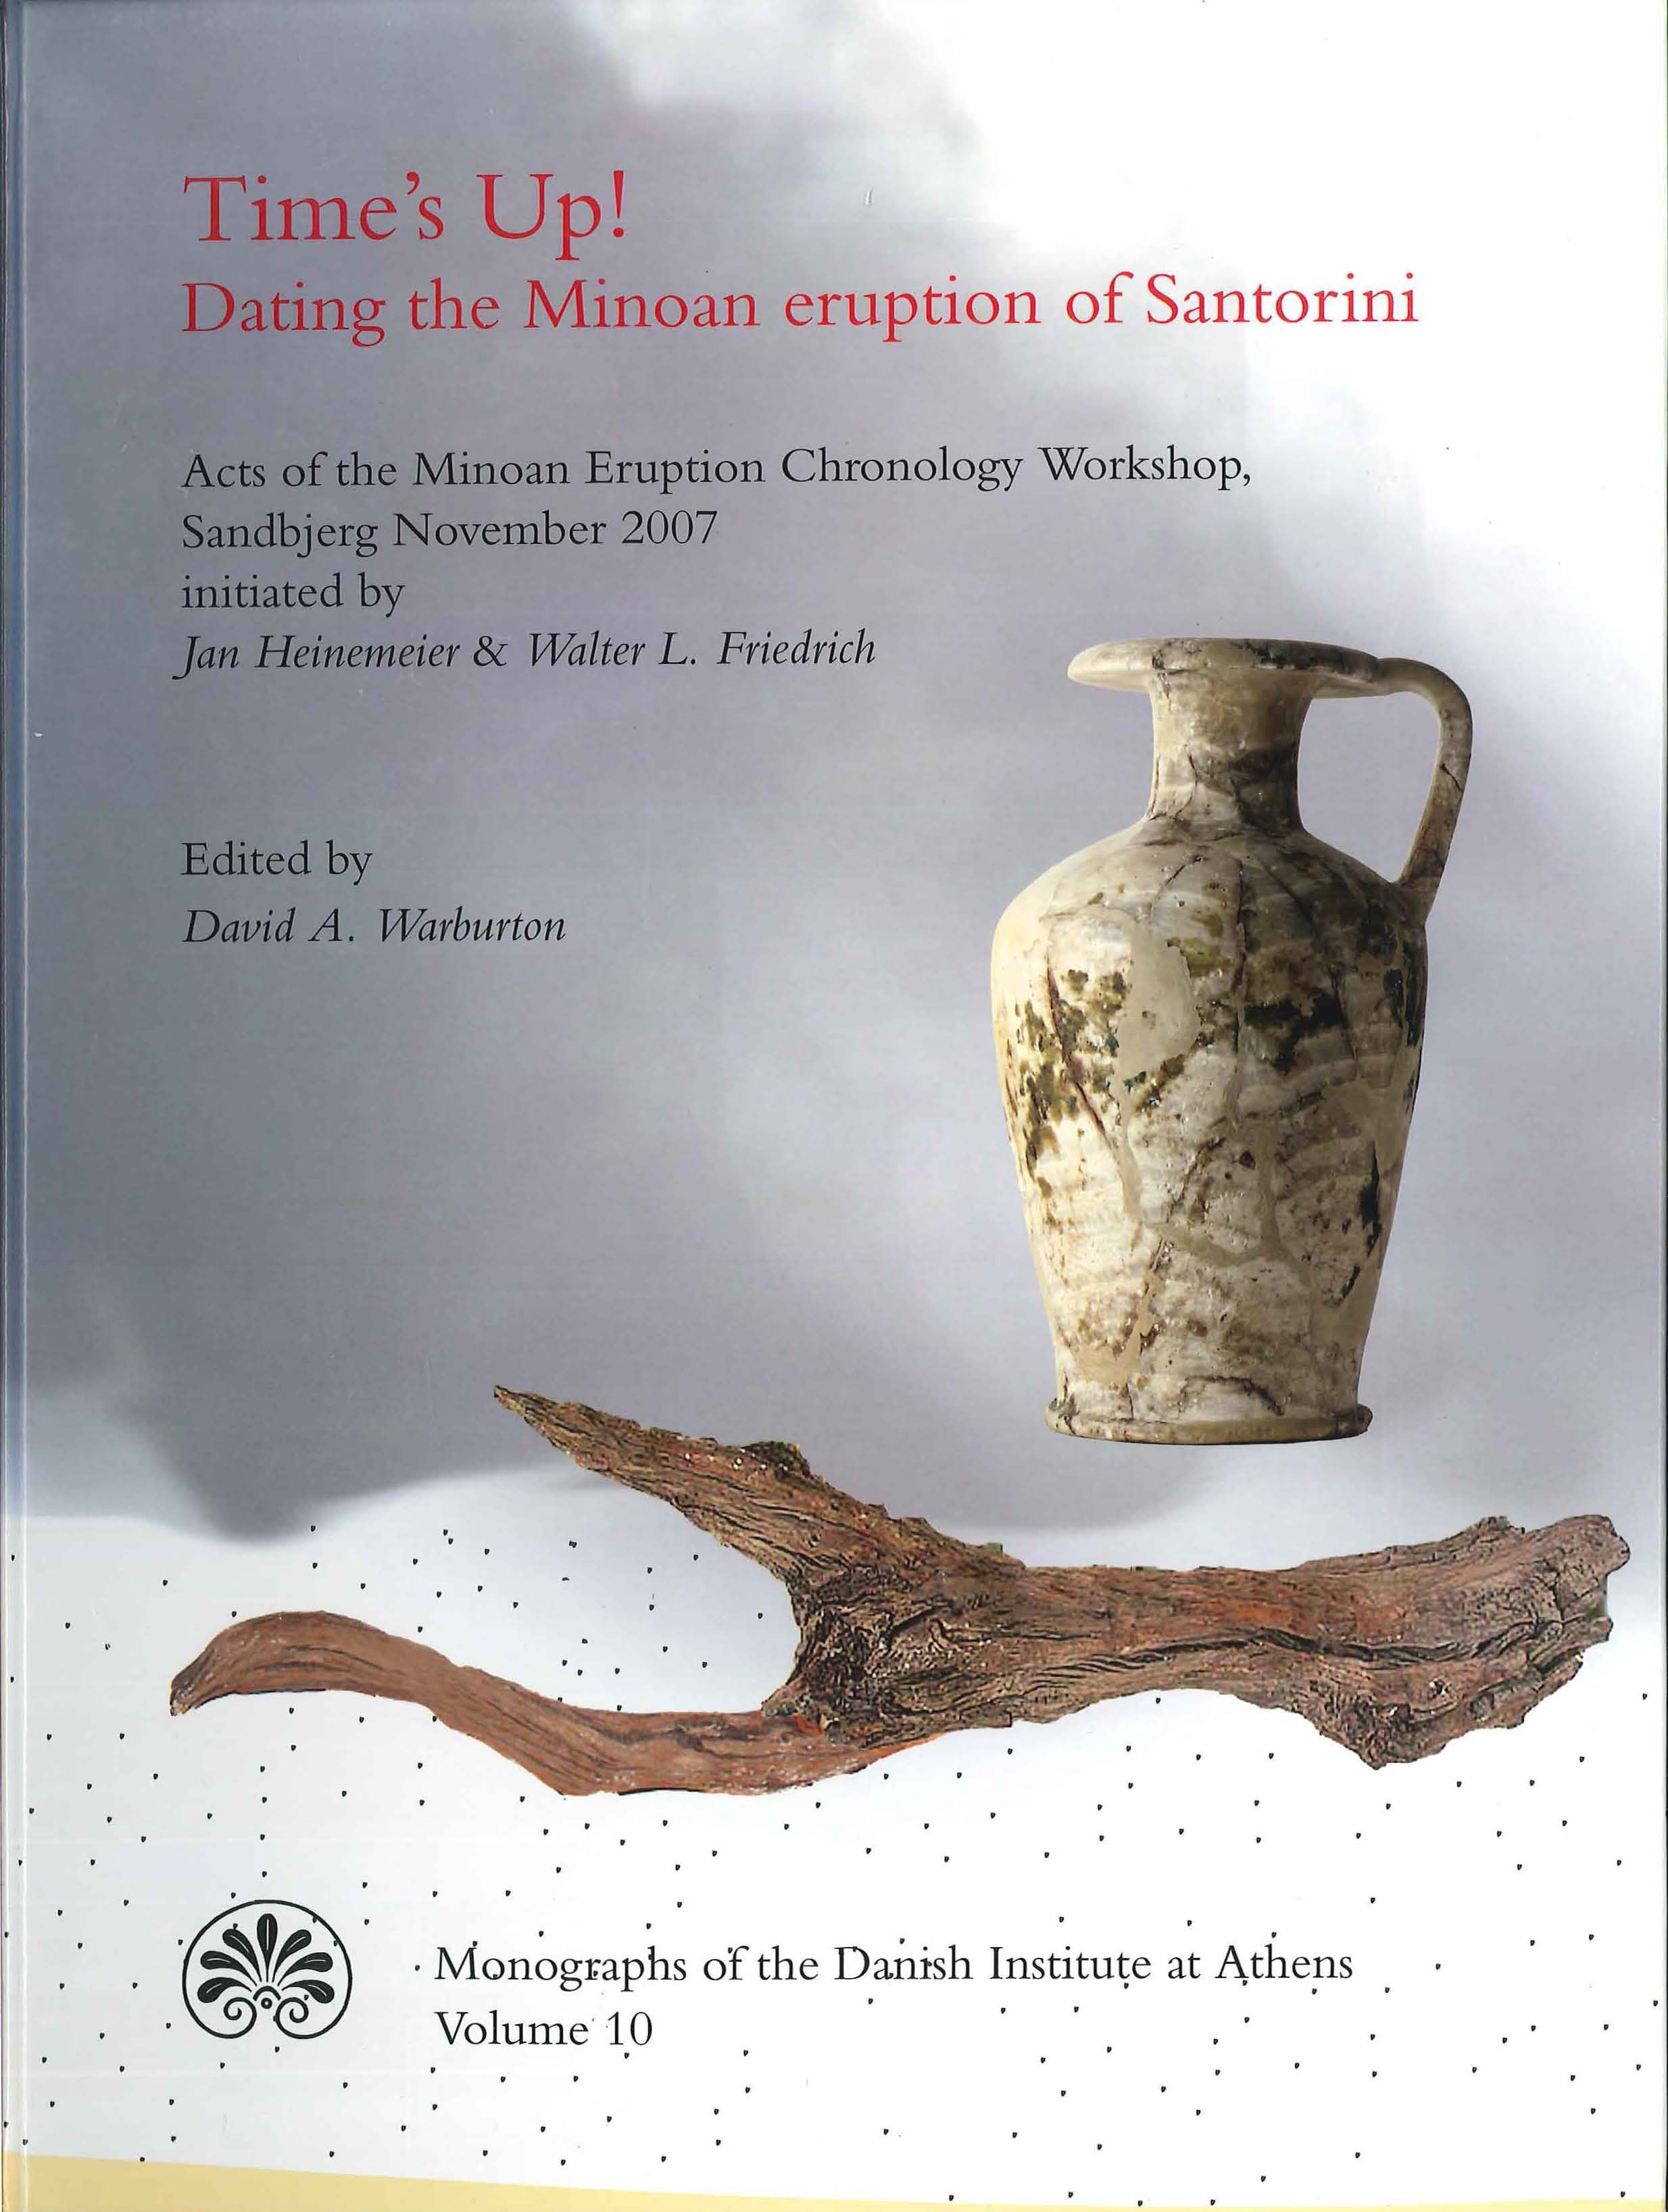 View Vol. 10 (2009): Time's Up! Dating the Minoan eruption of Santorini